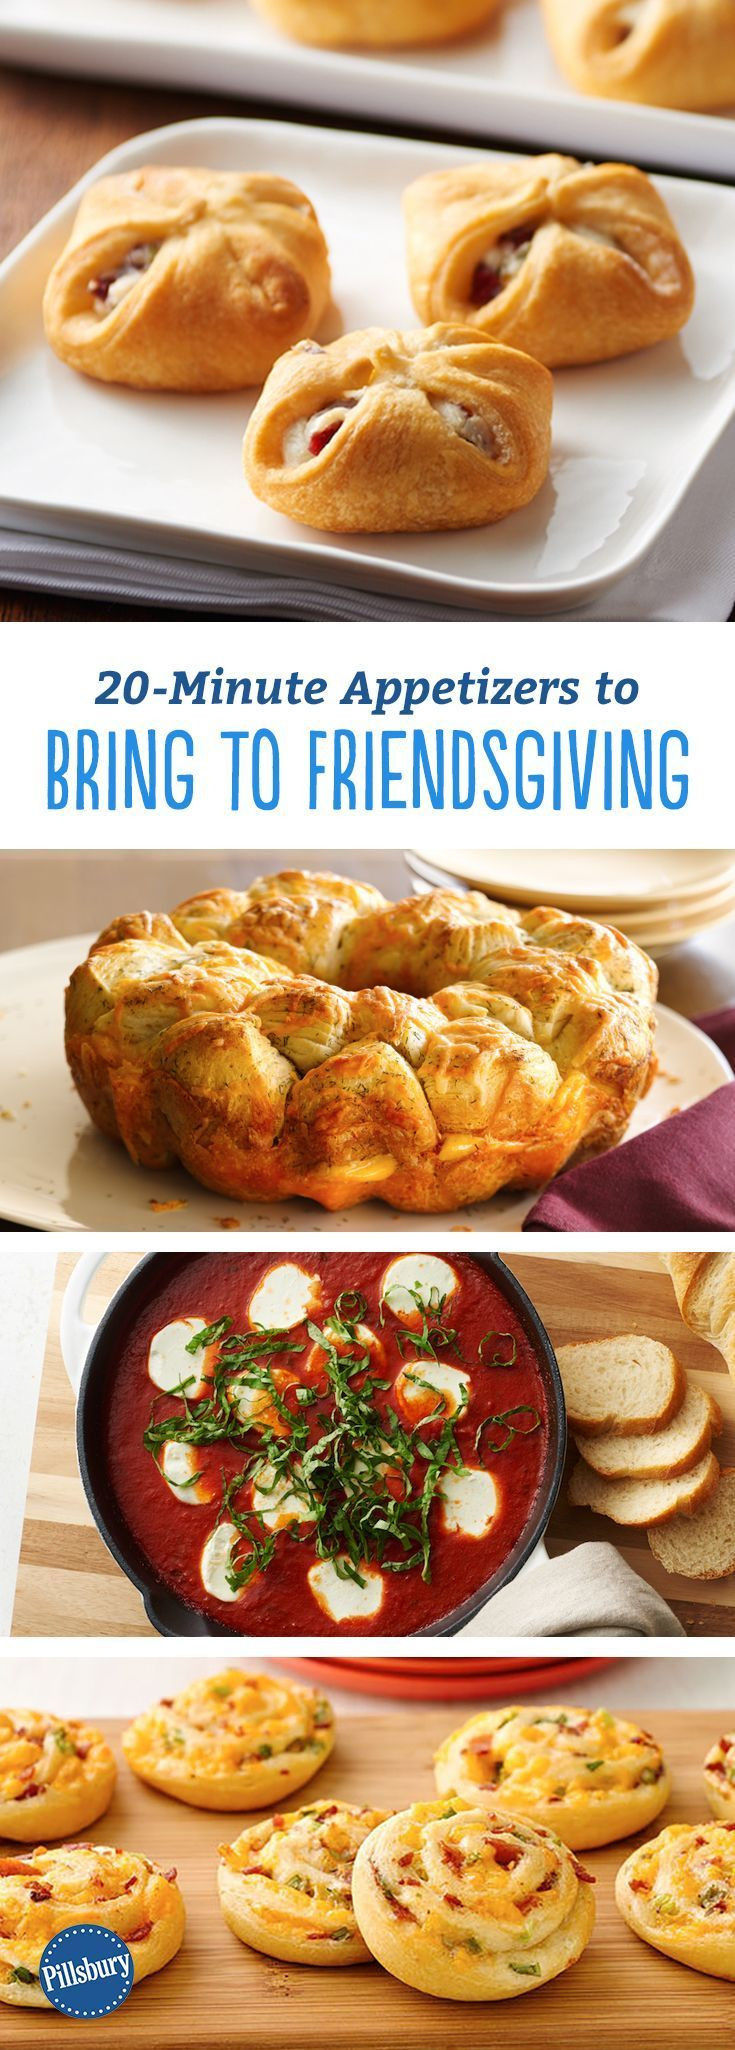 Thanksgiving 2019 Appetizers  20 Minute Appetizers to Bring to Friendsgiving in 2019